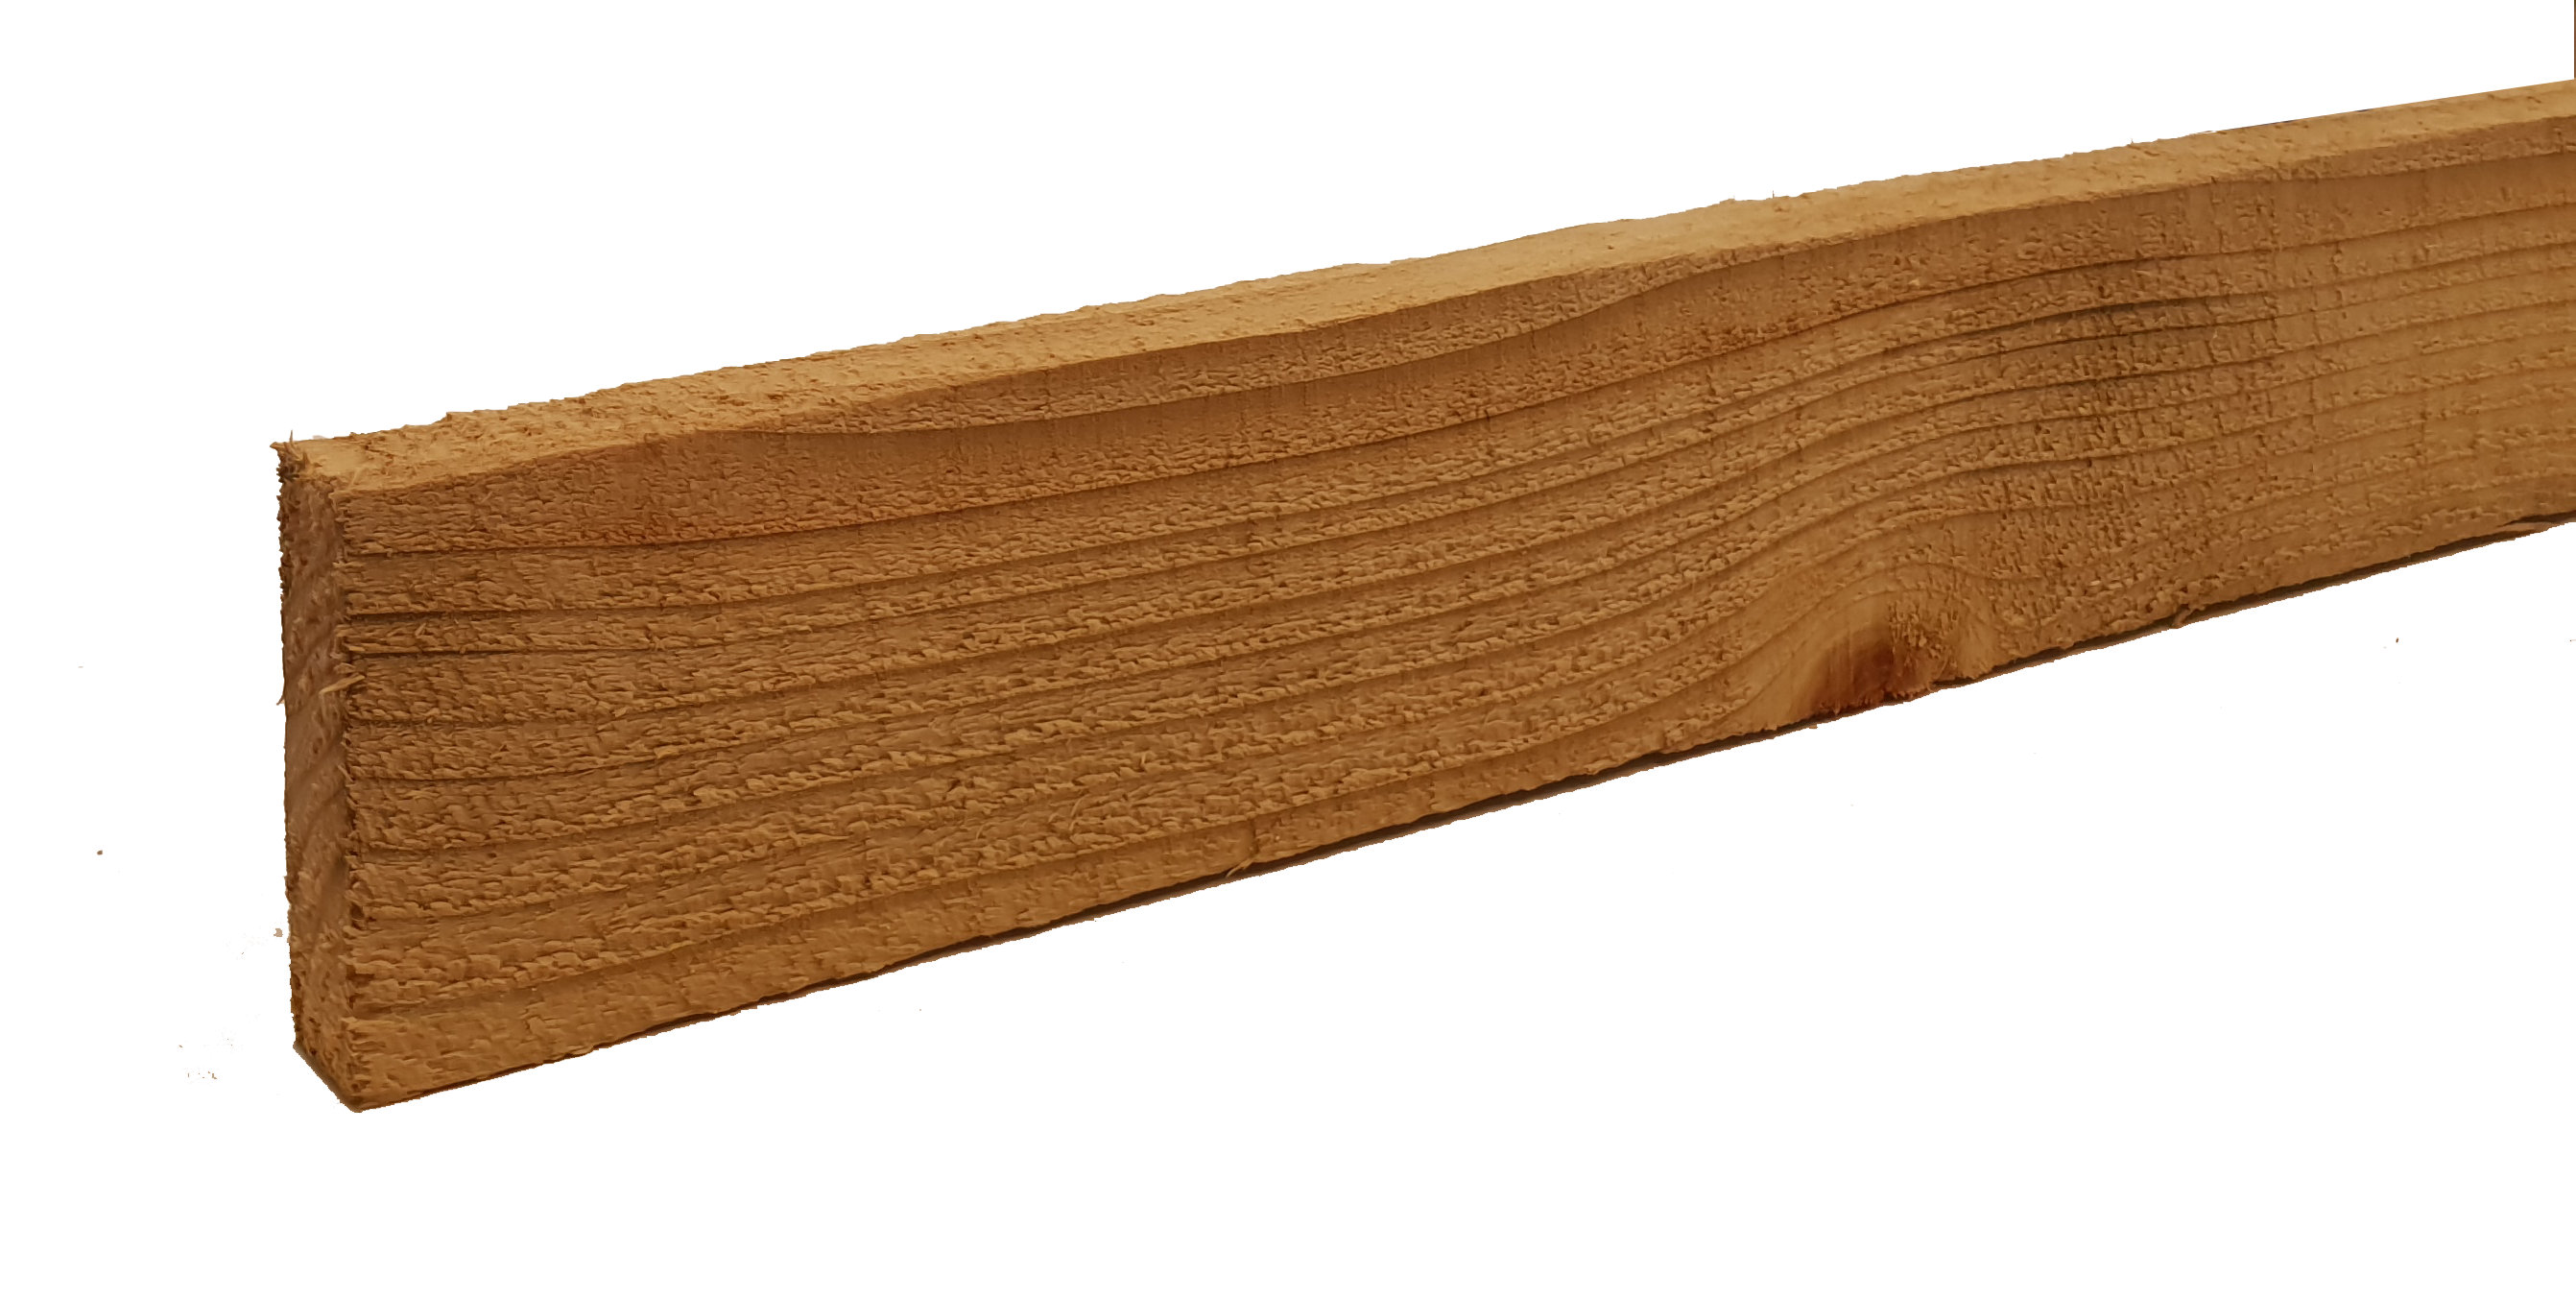 Sawn and tanalised timber